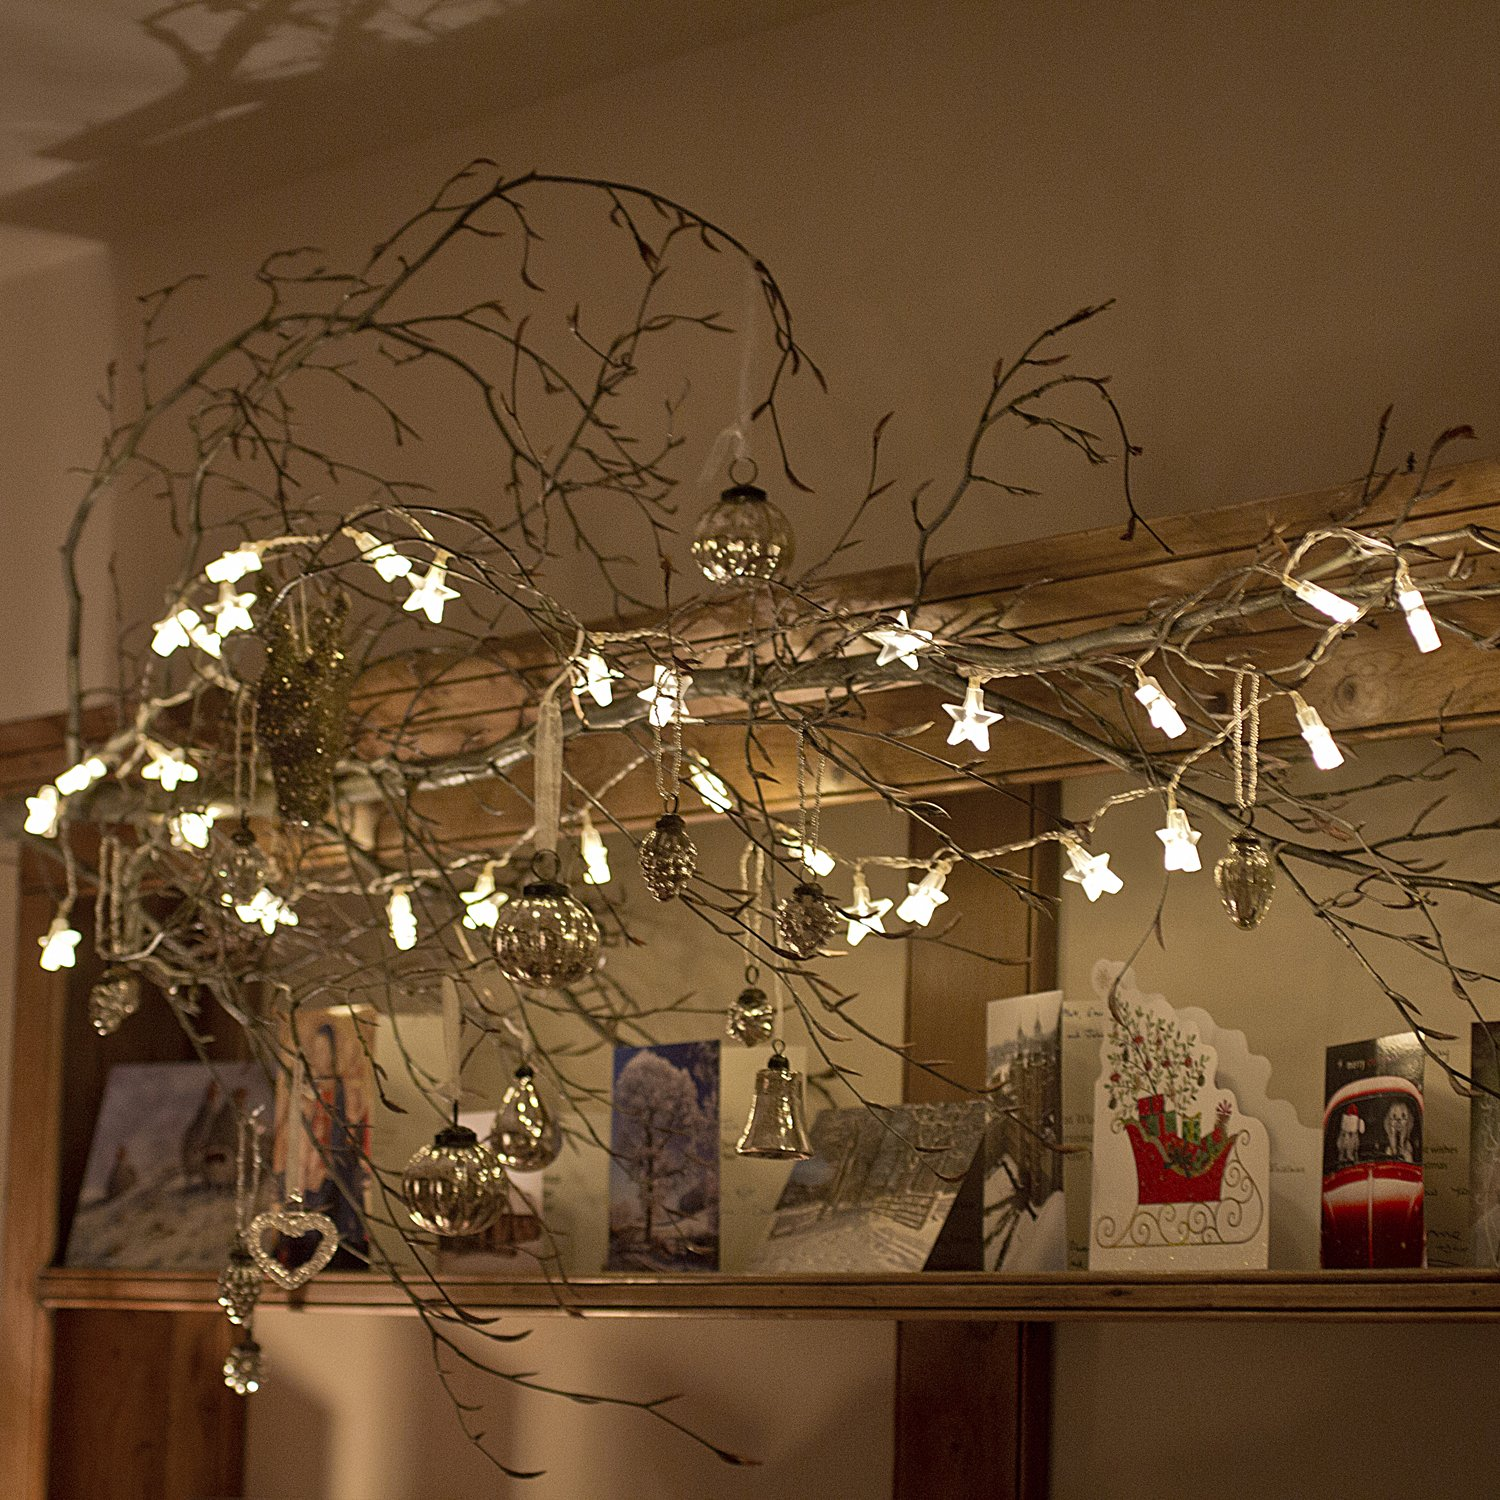 Cosy bedroom fairy lights - Indoor Star Fairy Lights With 30 Warm White Leds By Lights4fun Amazon Co Uk Kitchen Home